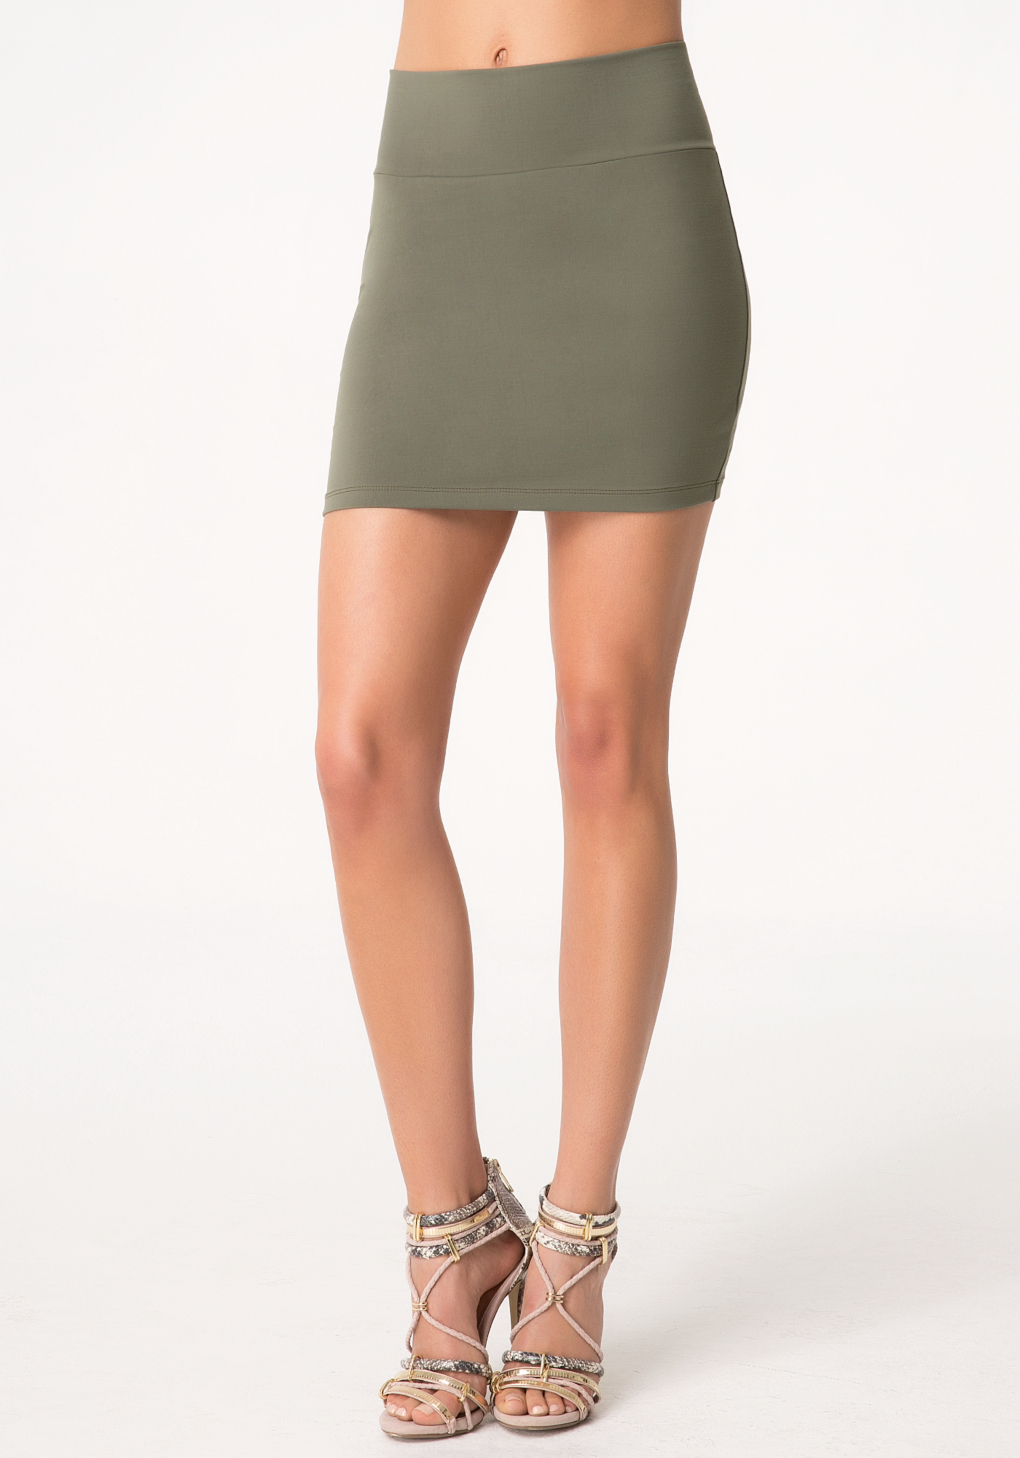 Bebe High Waist Mini Skirt in Green | Lyst